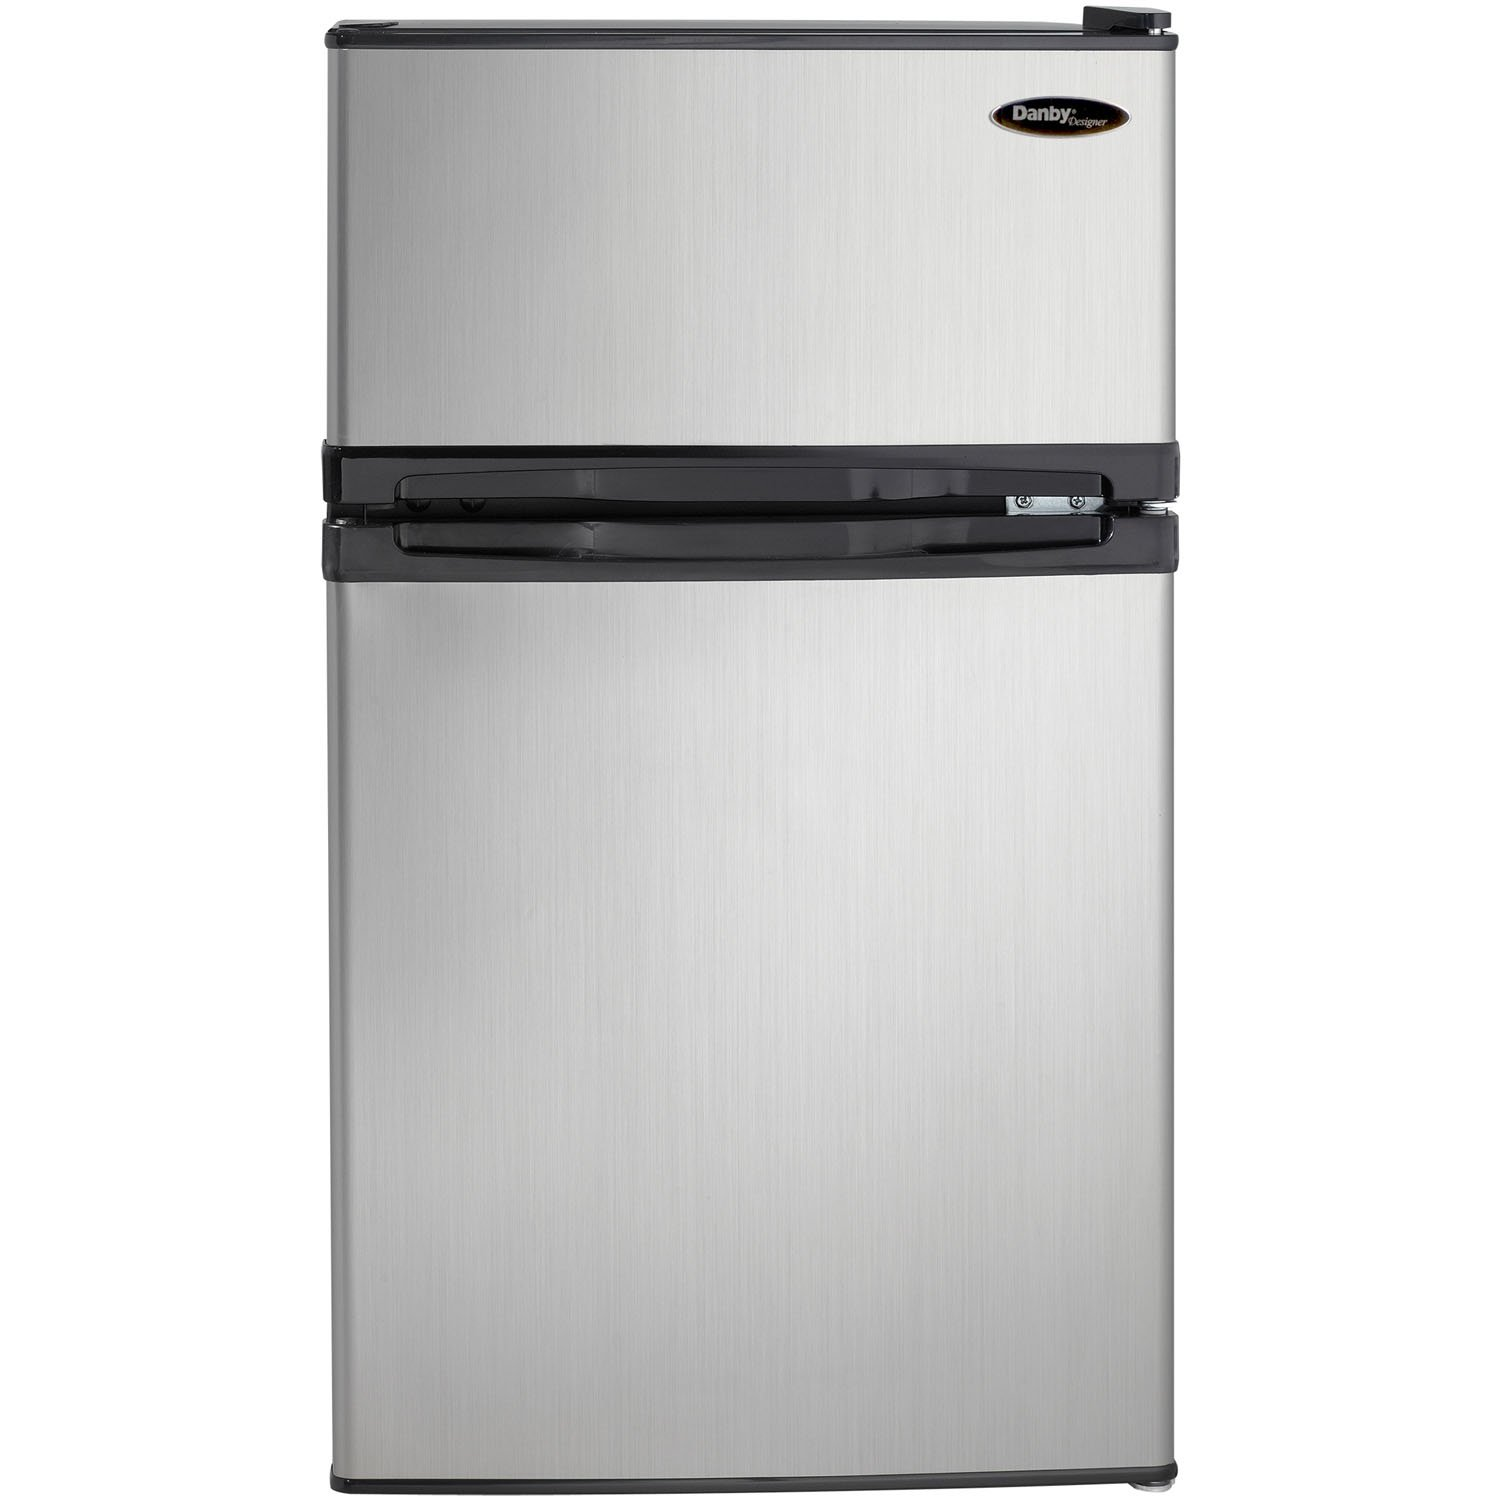 Amazon.com: Danby DCR031B1BSLDD 3.1 Cu. Ft. 2 Door Compact Refrigerator,  Steel: Appliances